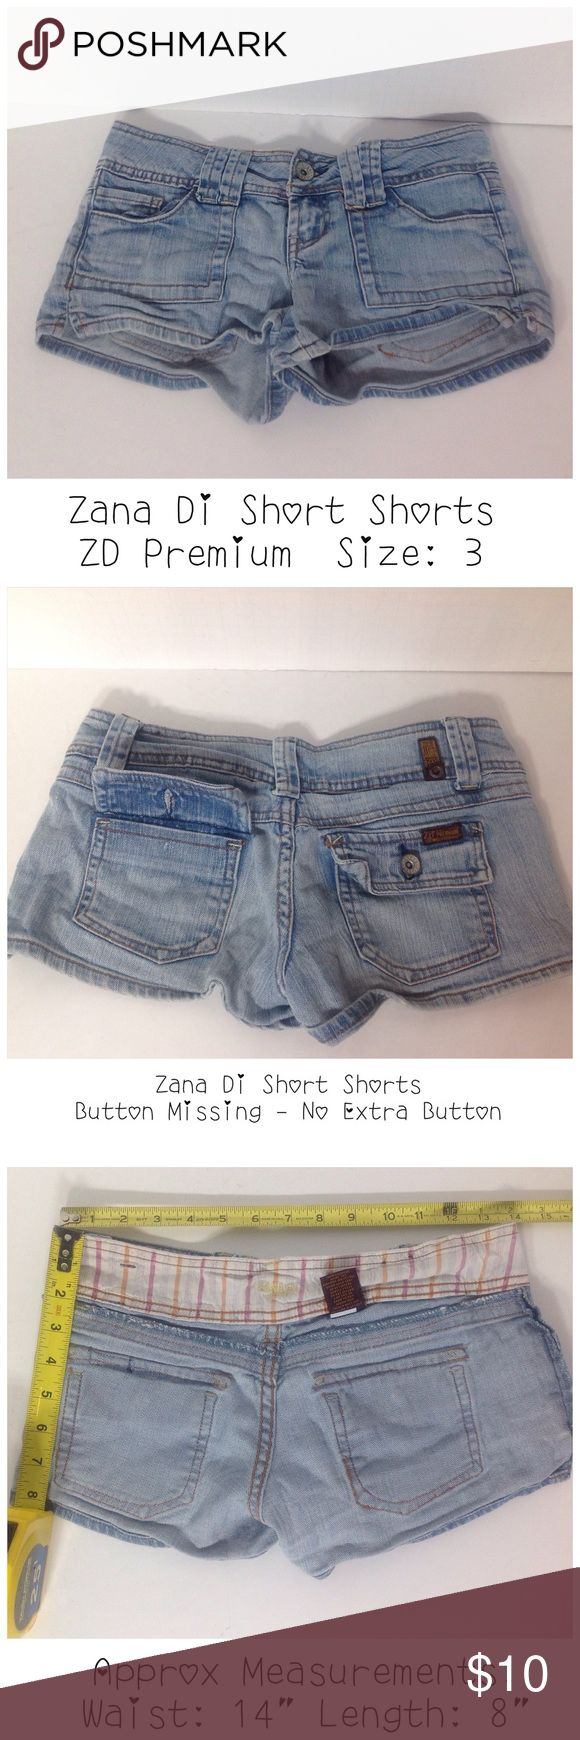 Zara Di Premium Short Shorts - Size 3 (Juniors) Zara Di Jeans (ZD Premium) - Please see pictures for measurements and more information.  99% Cotton / 1% Spandex. Made in China. Thank you for stopping by my closet.  Happy Poshing! 🌸 Zana Di Shorts